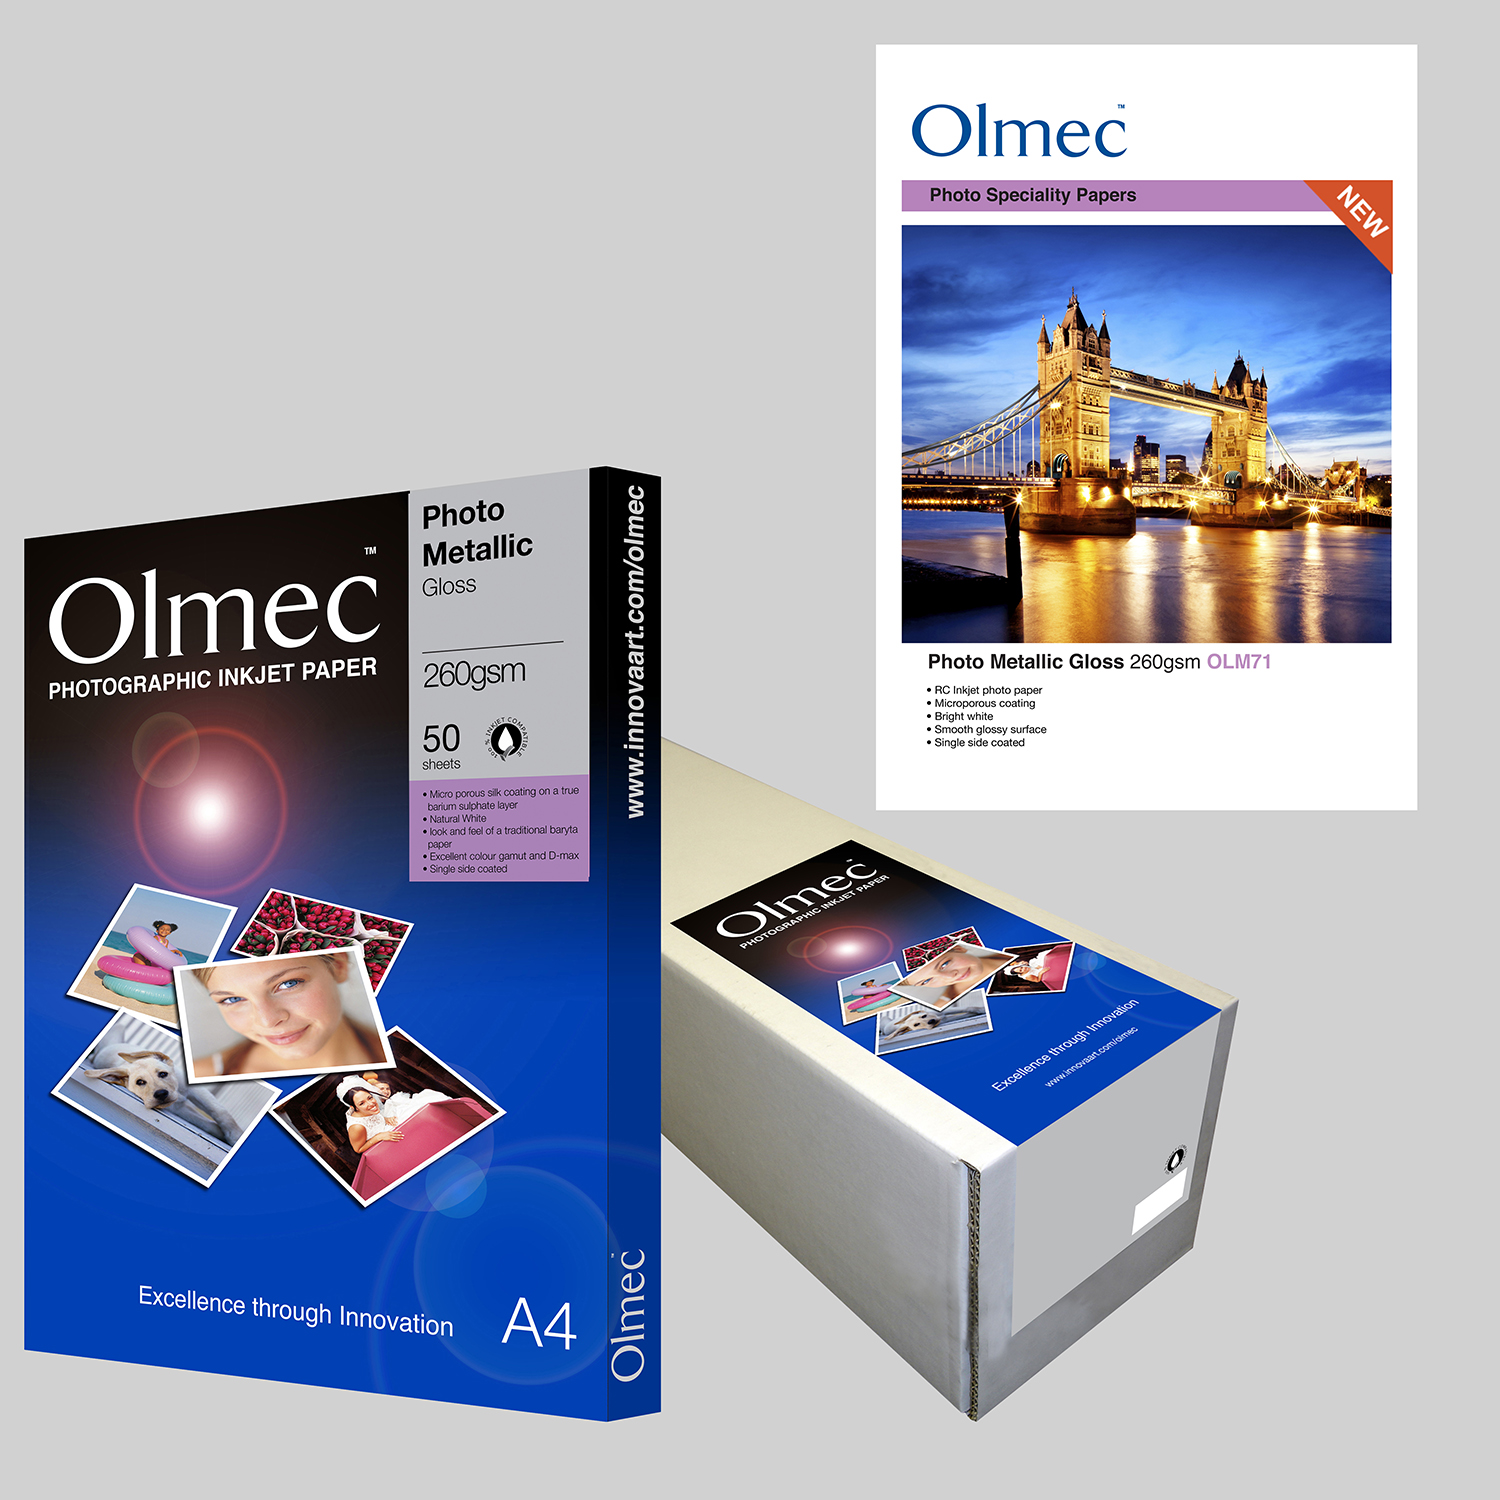 Olmec Photo Metallic Gloss 260gsm OLM 71